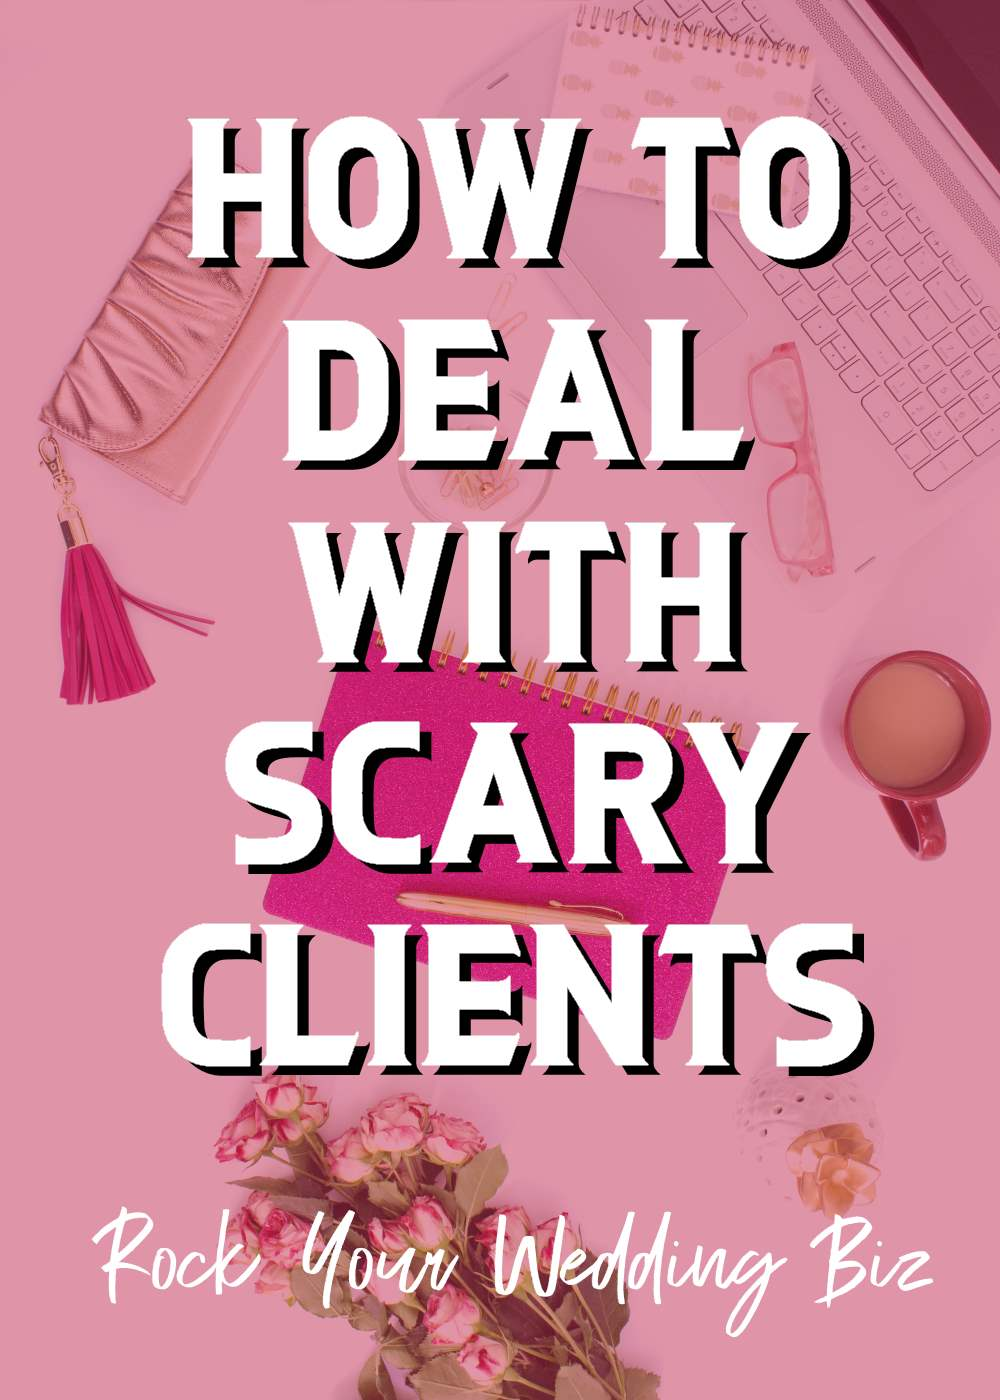 Episode 27 - How to Deal with Scary Clients